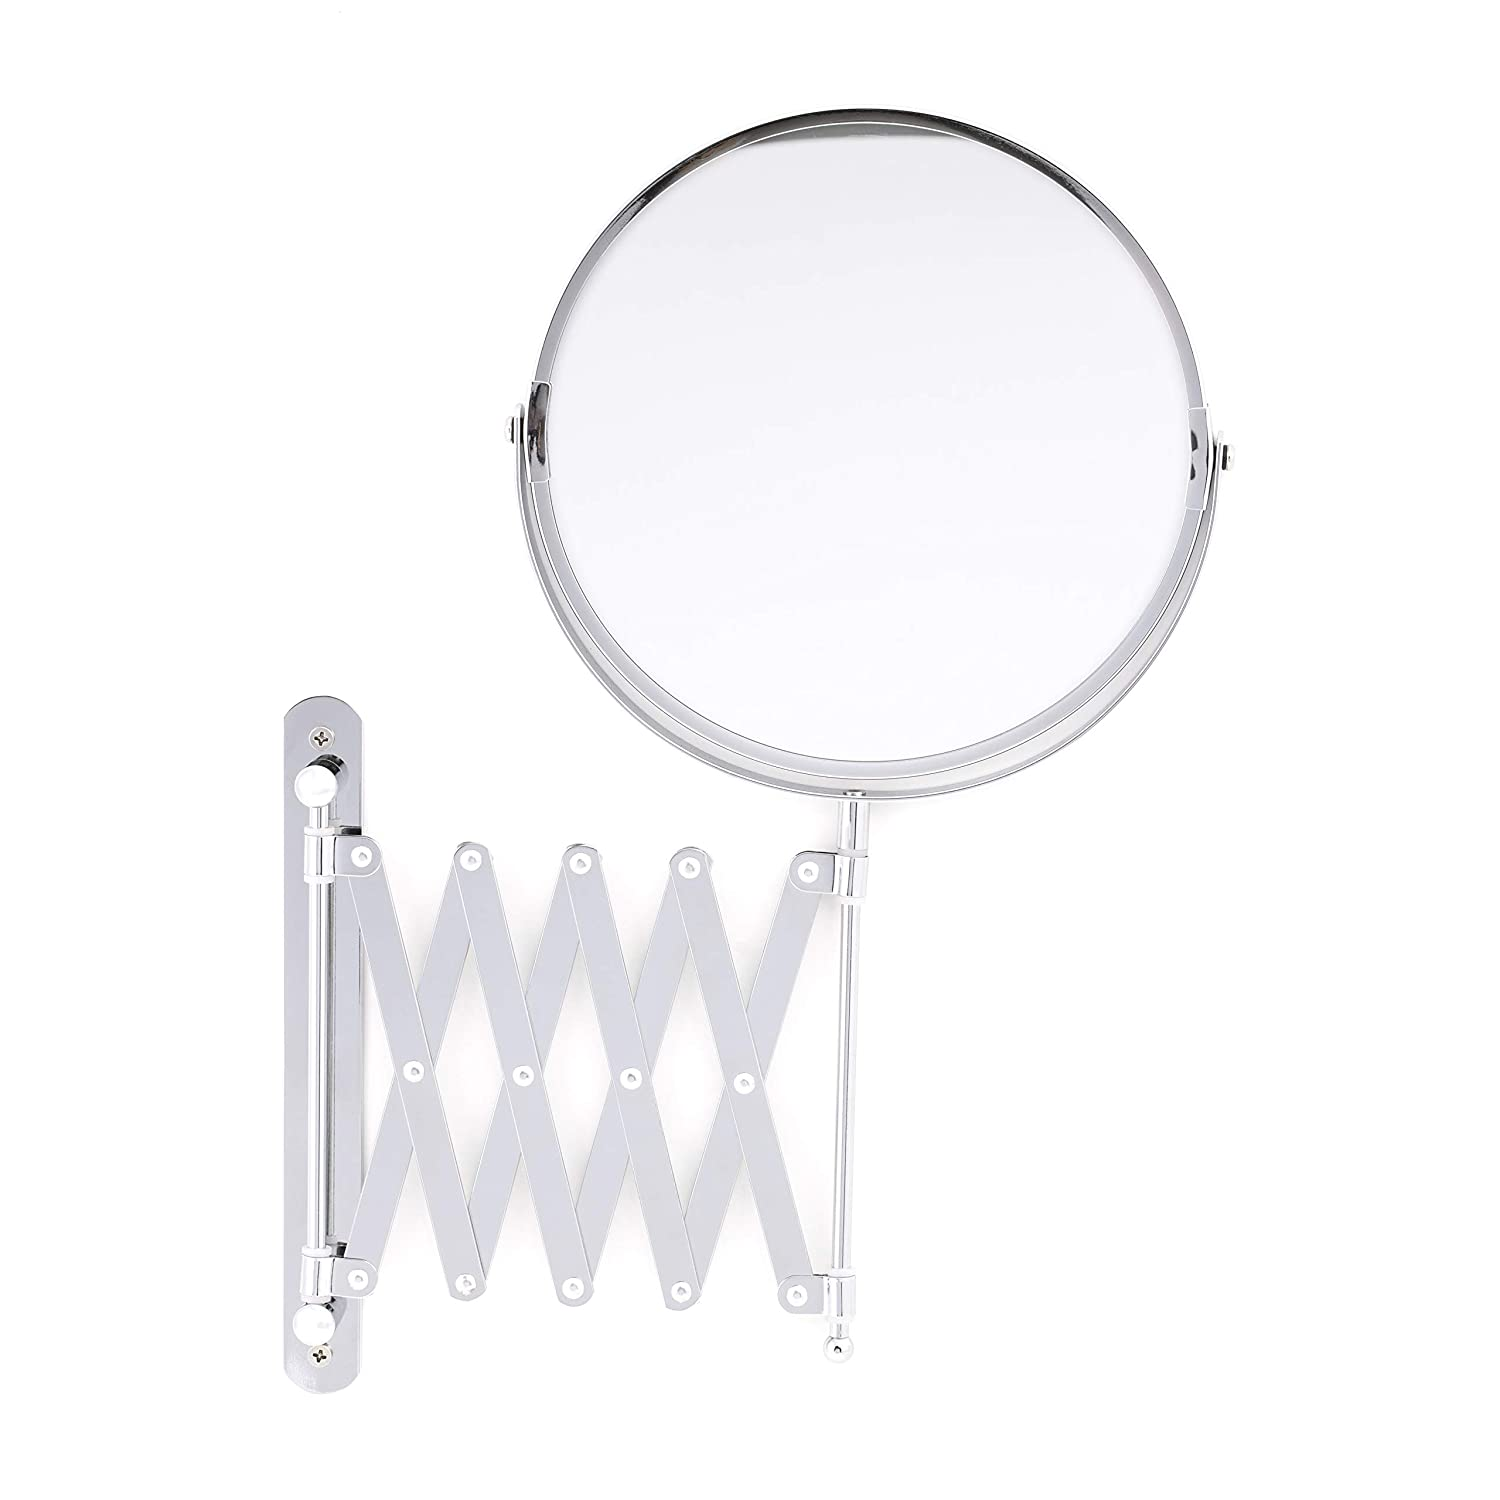 Royalford Double Sided Extending Wall Mounted Bathroom Mirror, Swivel and Length Adjustable Shaving Mirror